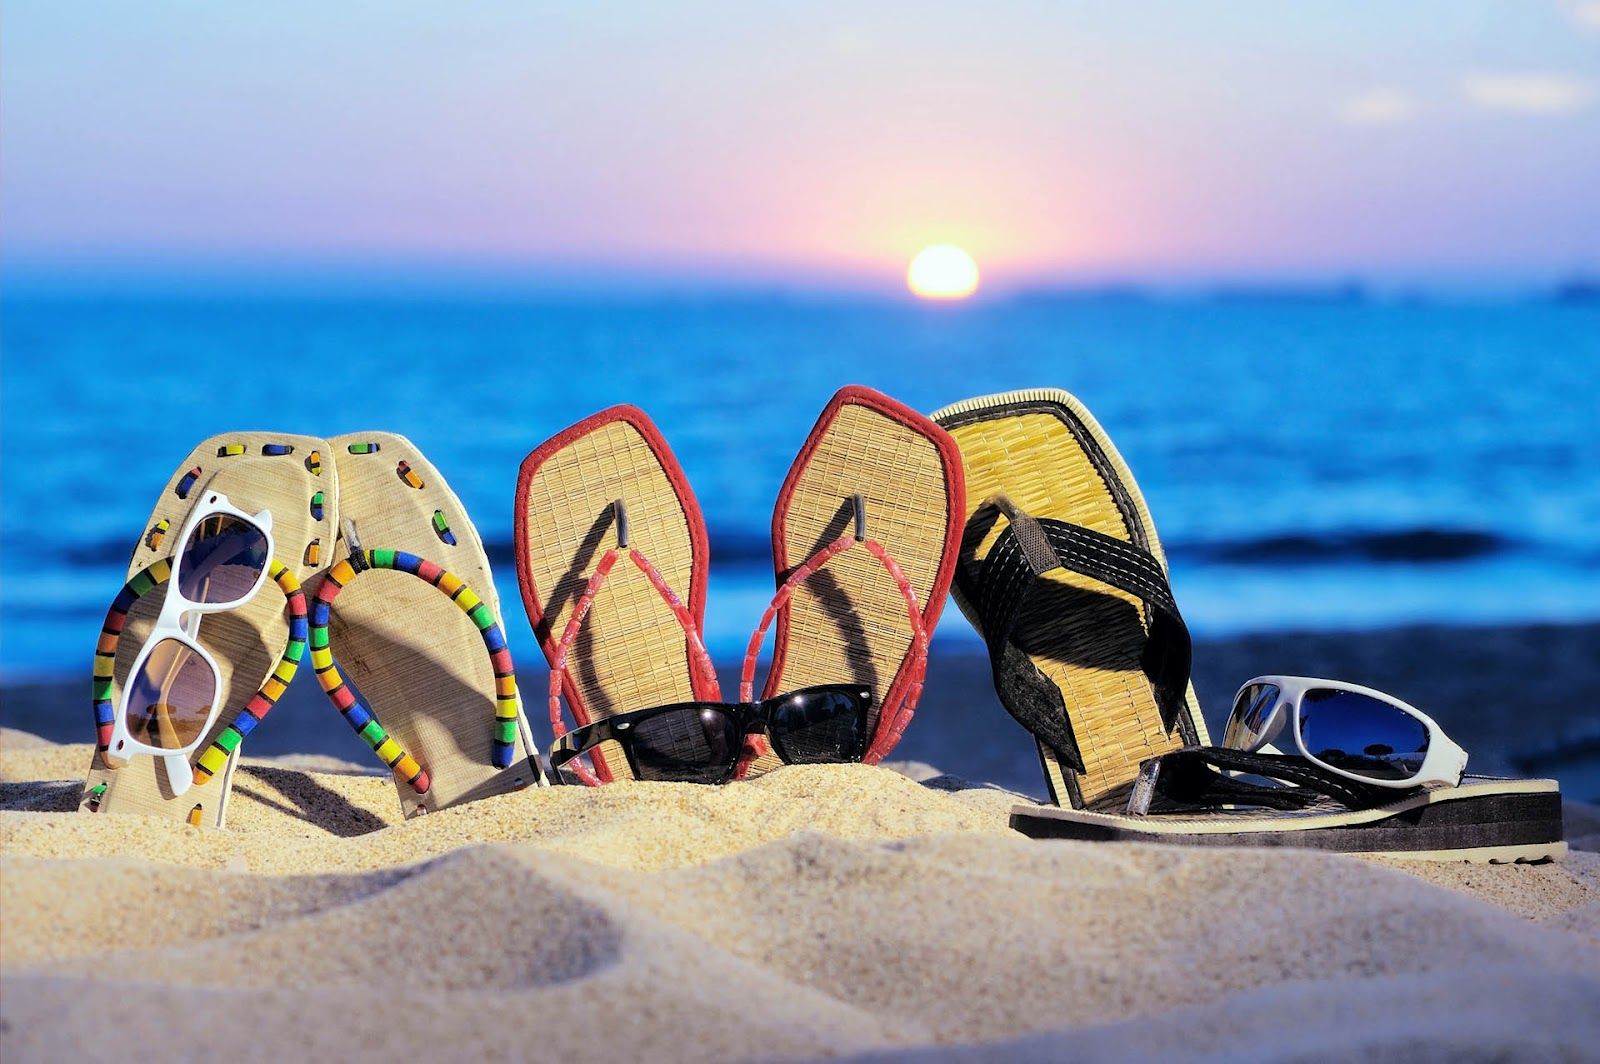 summer-desktop-wallpaper-with-sunglasses-and-flip-flops-at-beach